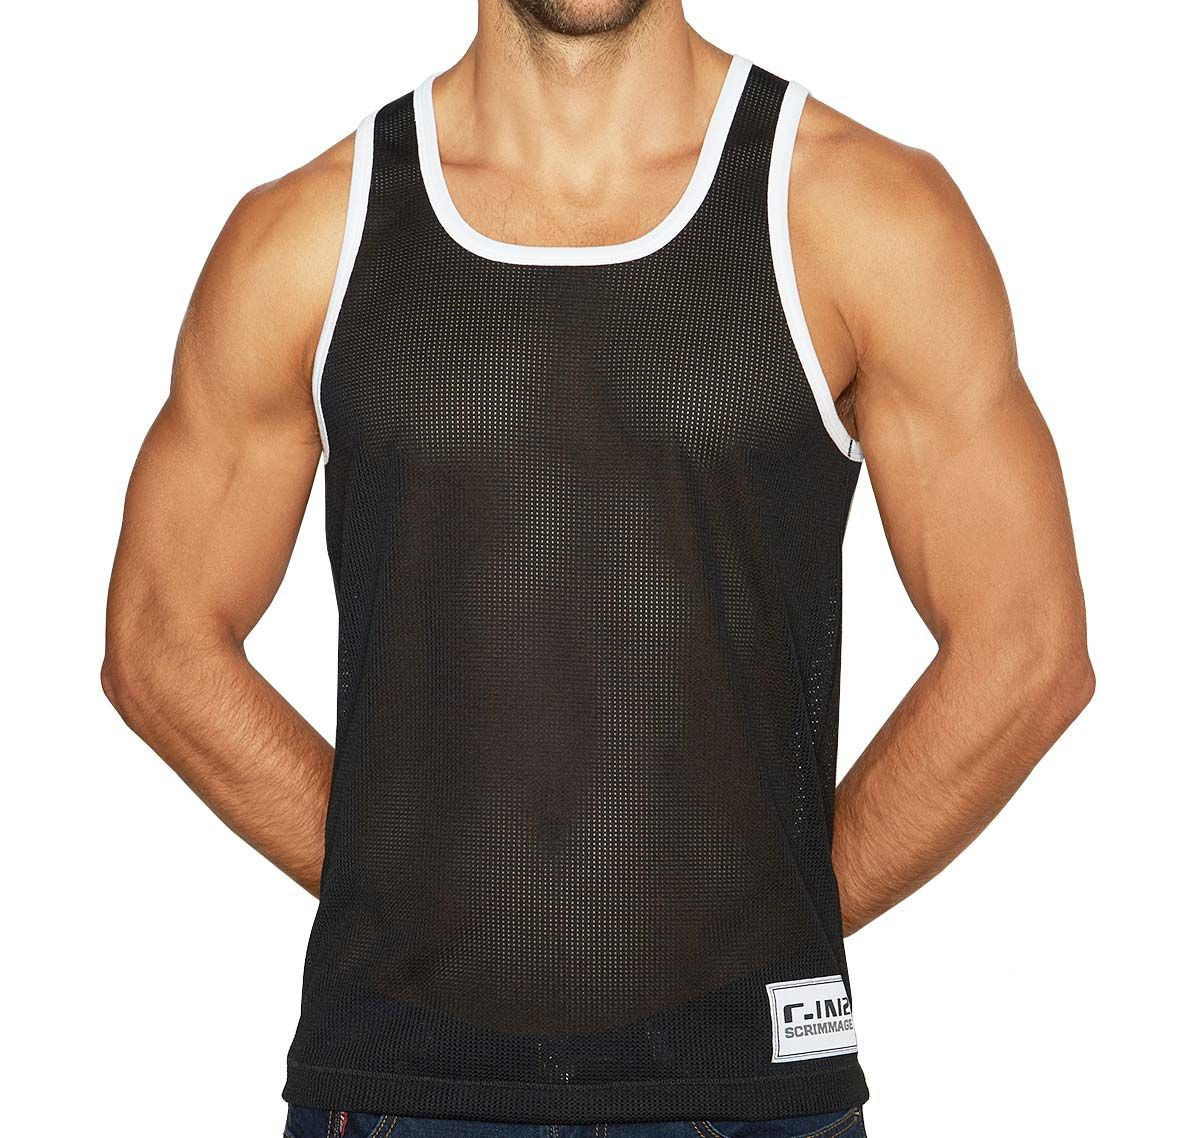 C-IN2 Débardeur SCRIMMAGE RELAXED TANK 6806-002A, noir